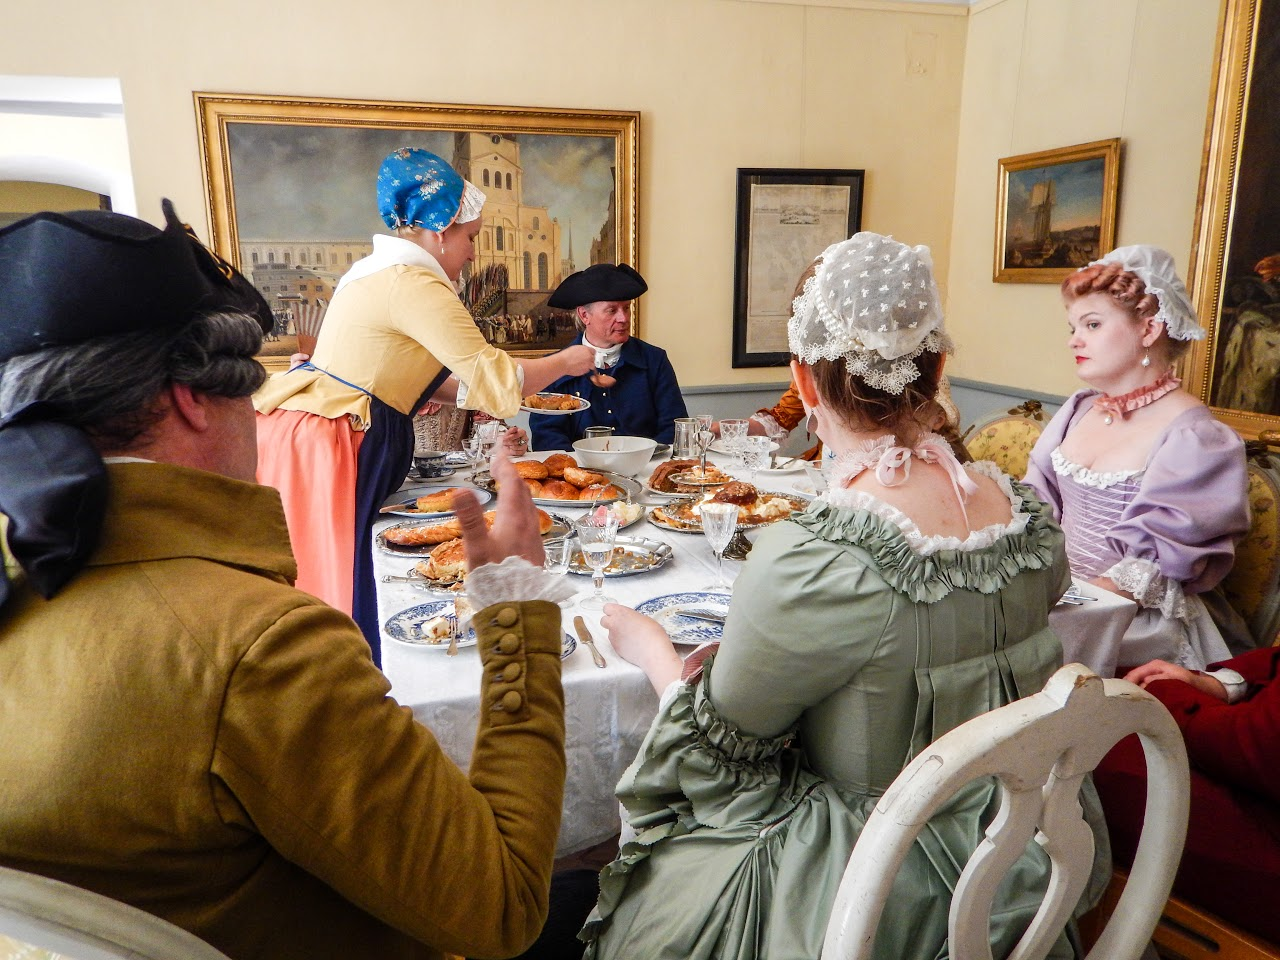 Women sitting at a table in 18th century style clothes.